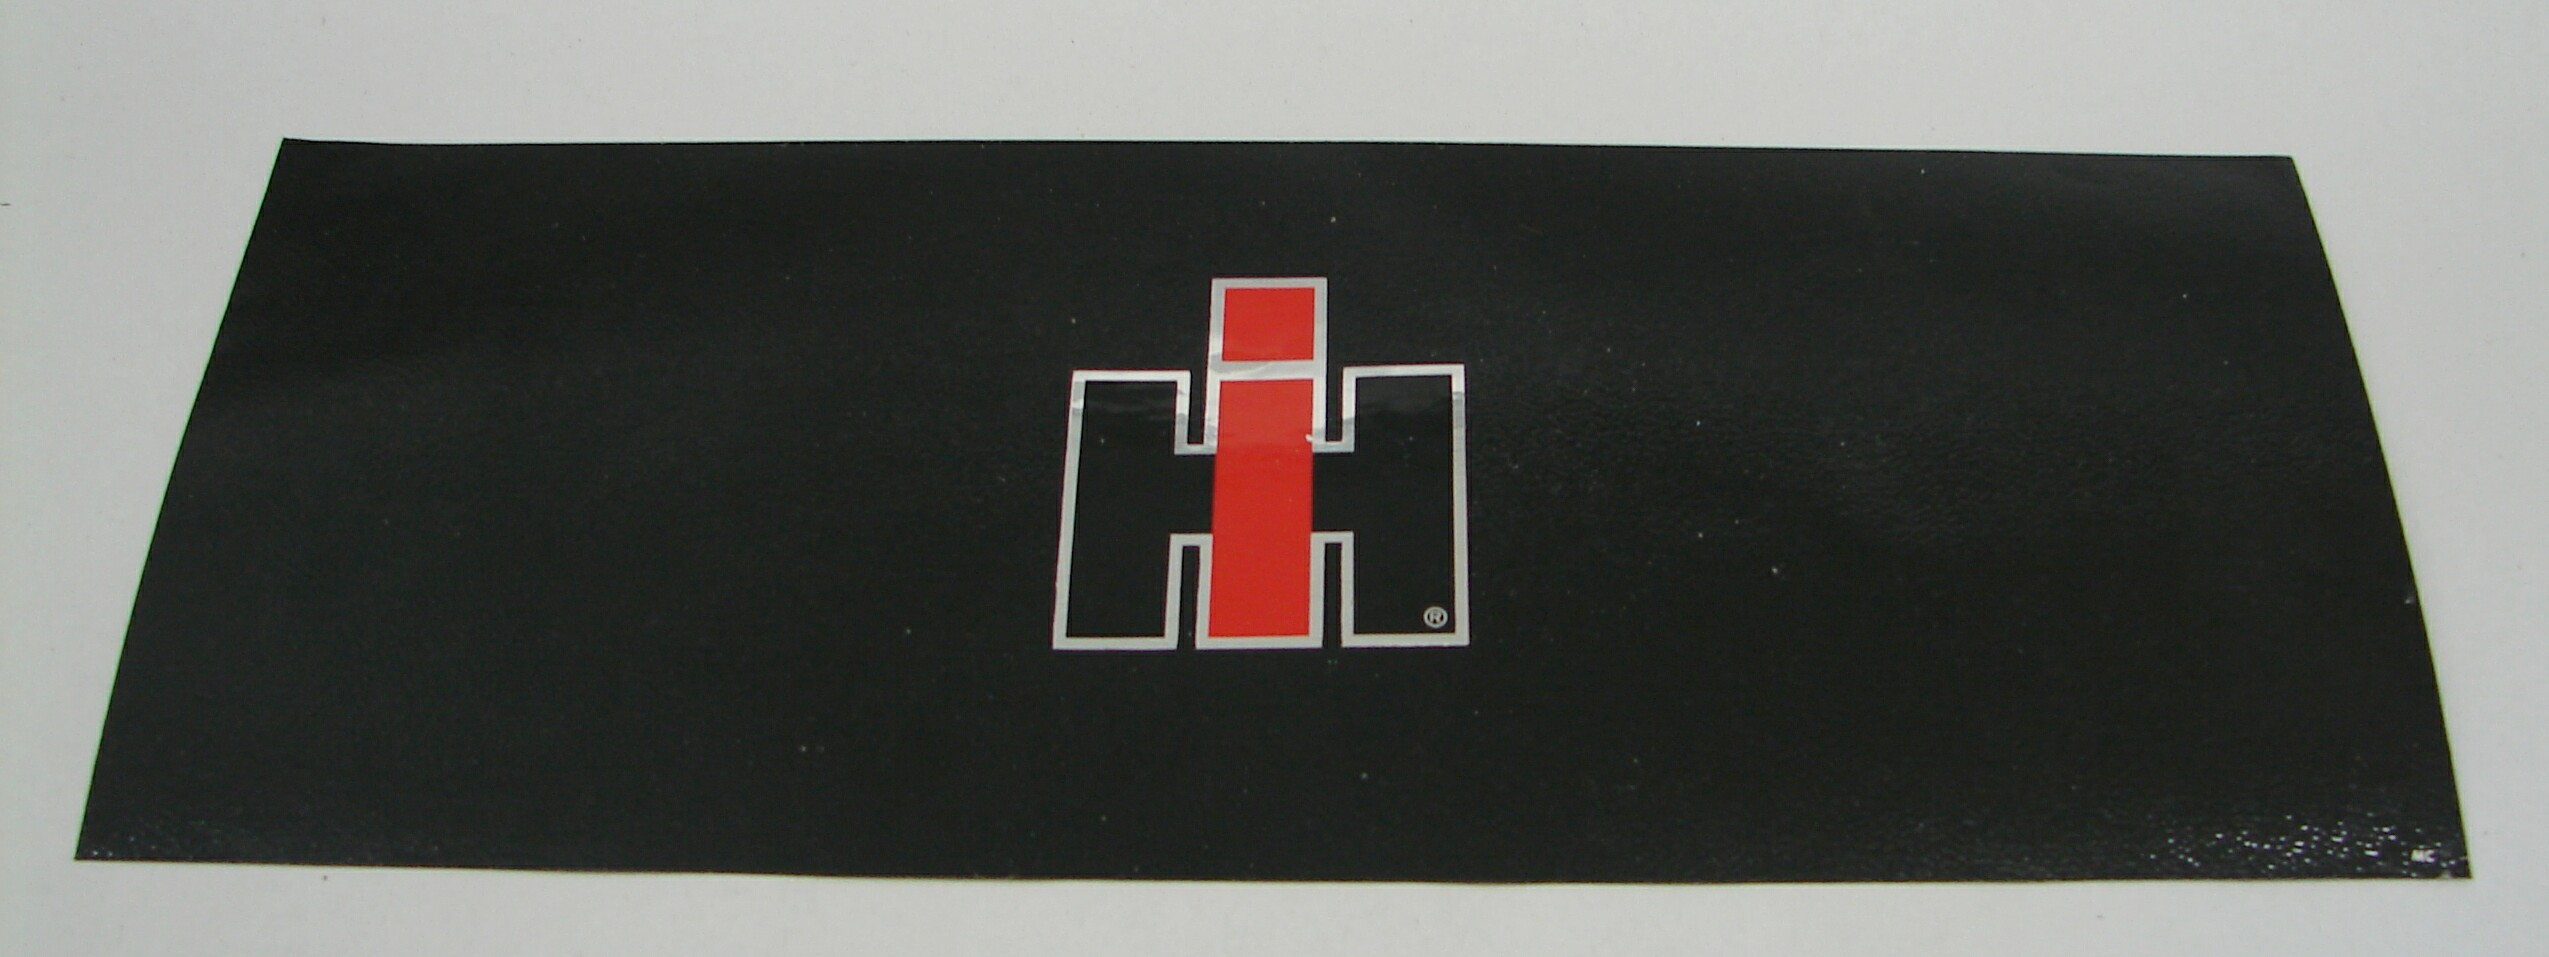 Ih Cub Cadet New Old Stock Decals Cubcadet Mtd Ccc Parts 1430 Wiring Diagram Nos 73 106 107 126 127 147 Textured Headlight Panel Decal Pn 529807 R1